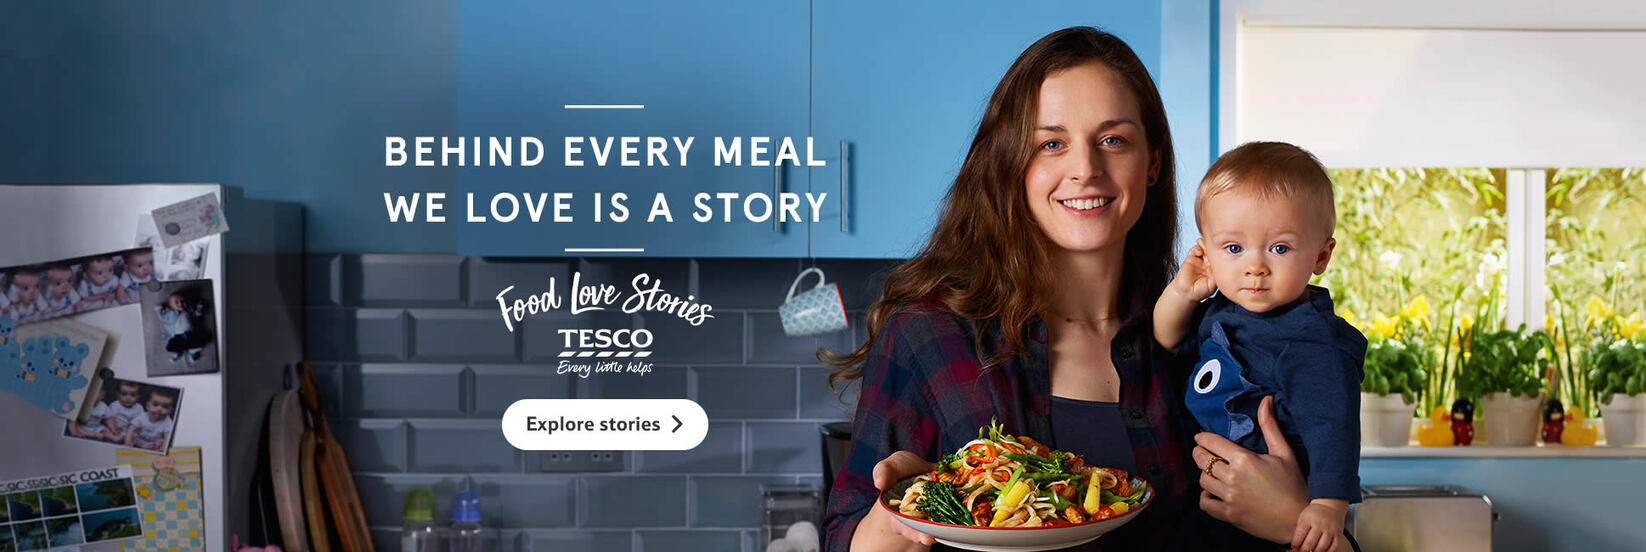 Food Love Stories: Behind every meal we love is a story. Explore our stories